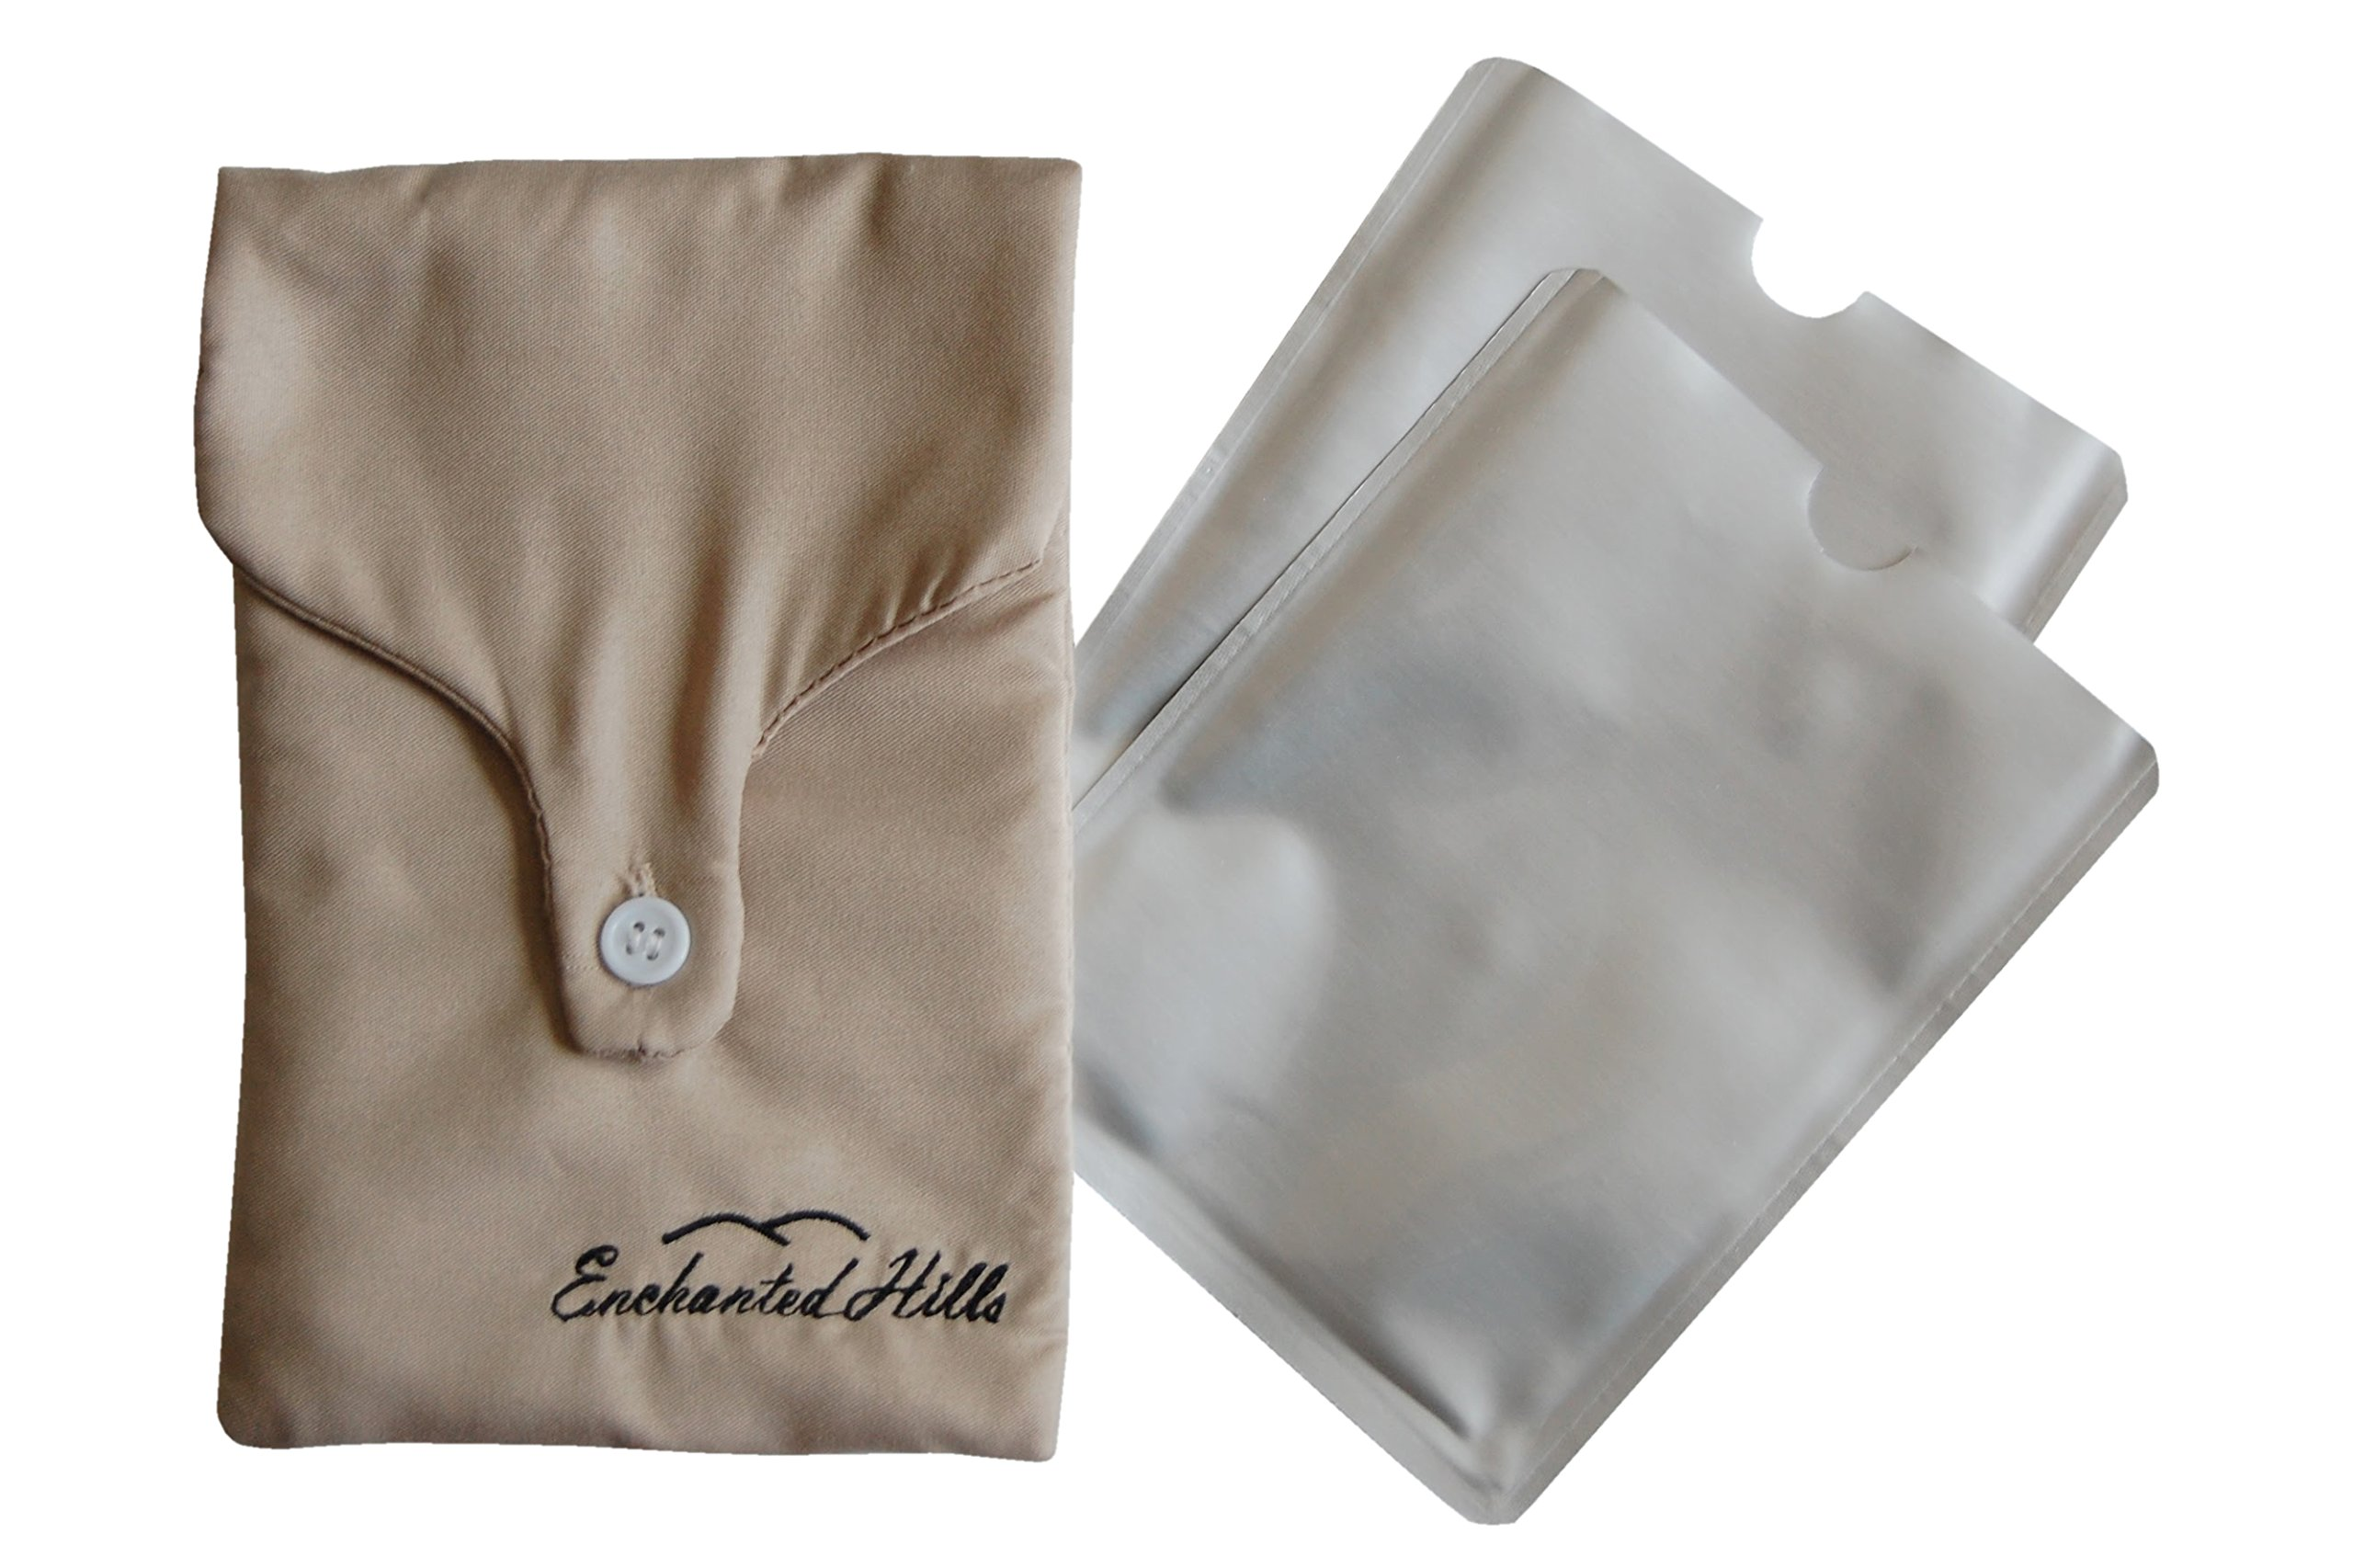 Enchanted Hills Bra Pouch with 2 RFID Passport Size RFID Blocking Sleeves